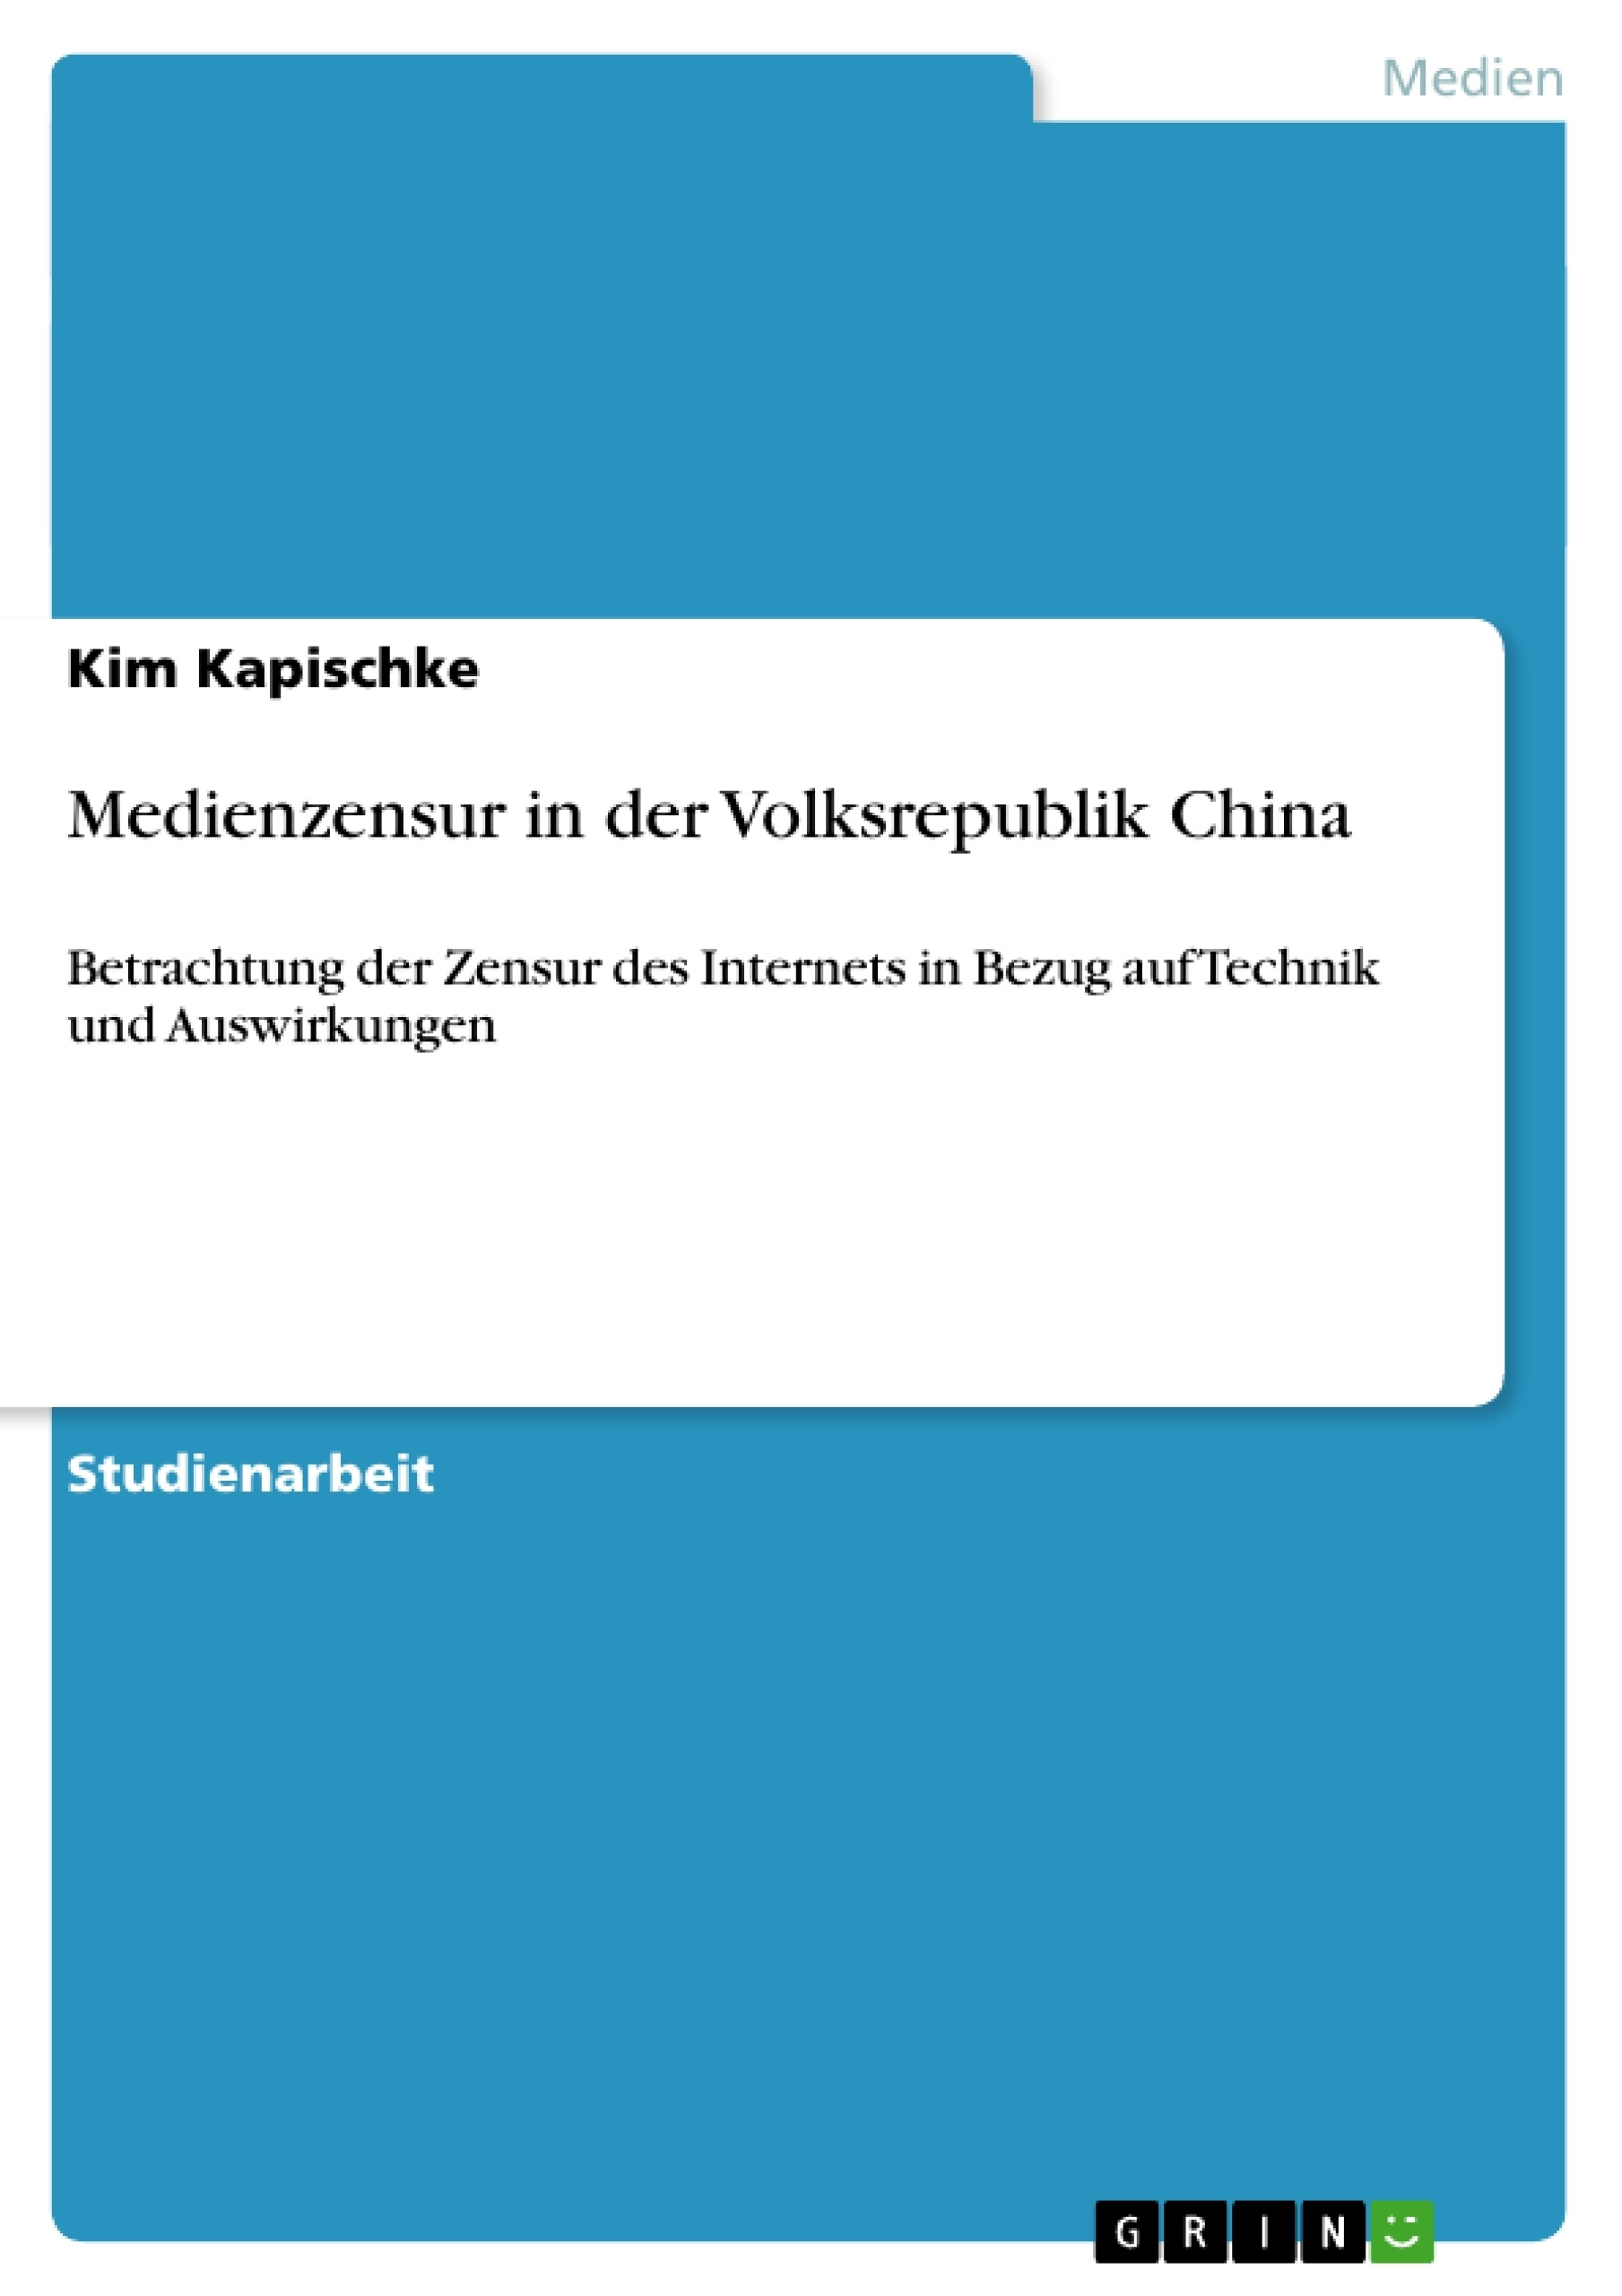 Titel: Medienzensur in der Volksrepublik China